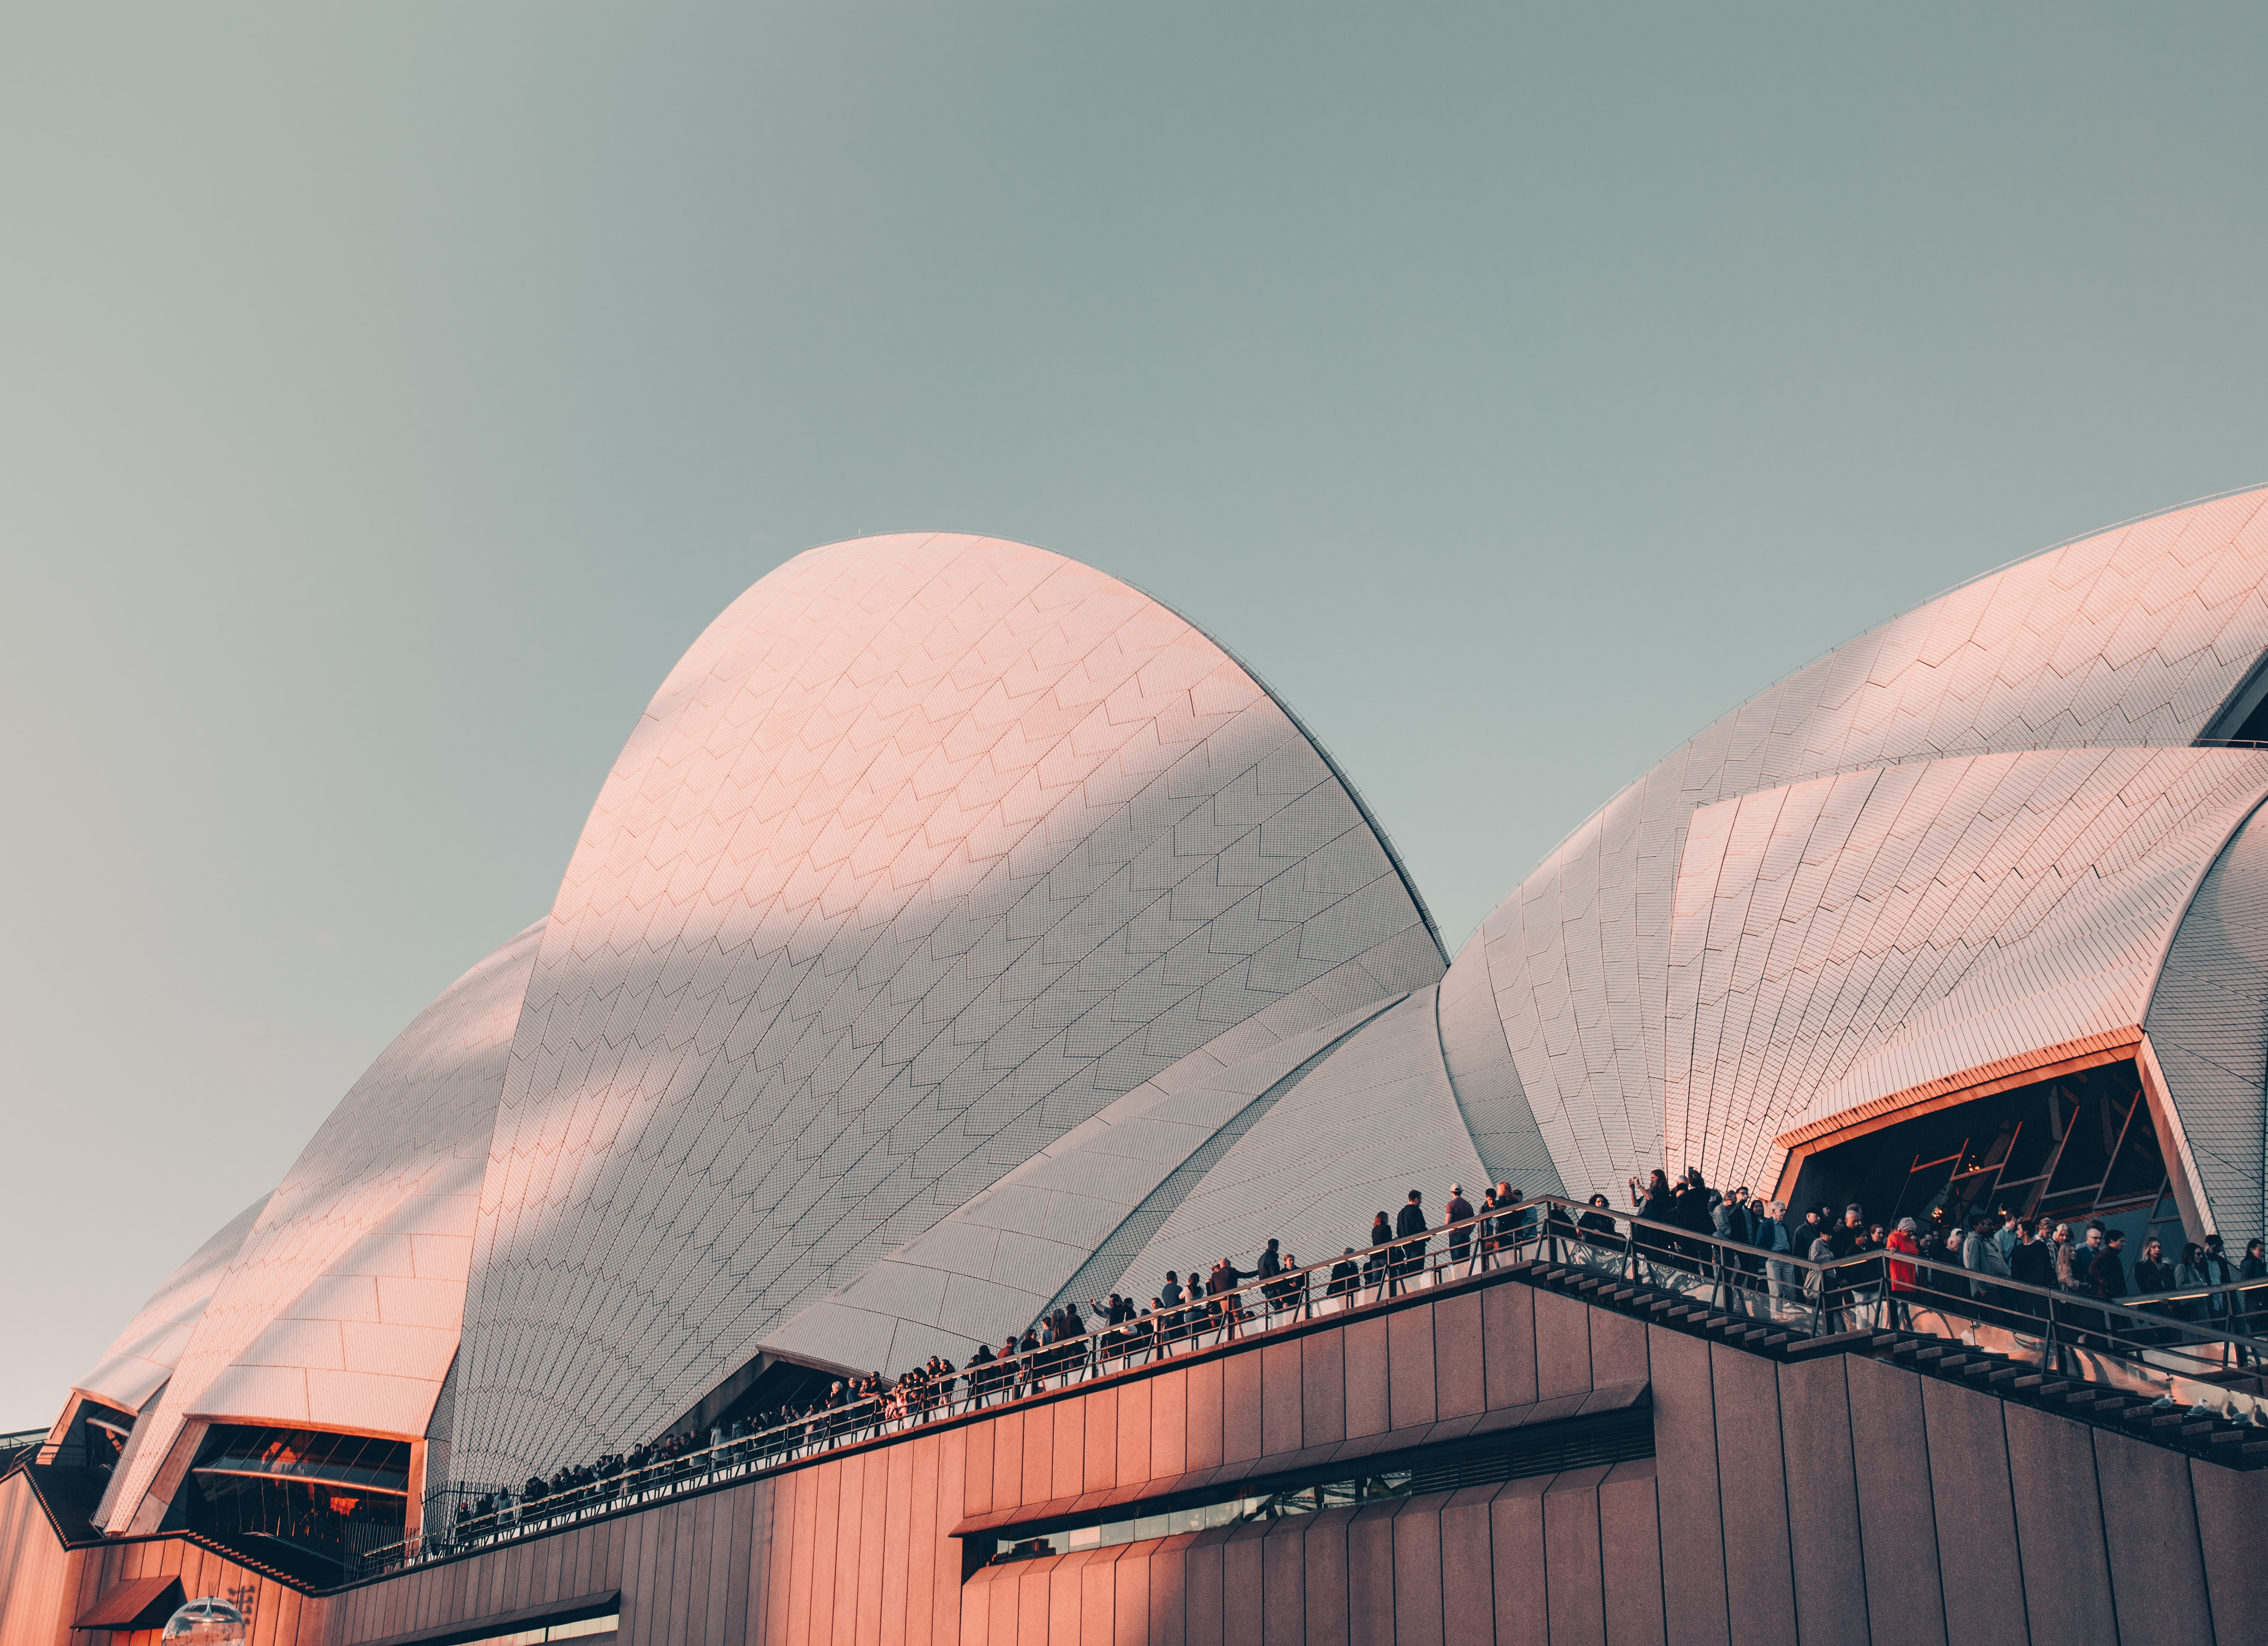 Sydney Opera house with people on the deck of the building